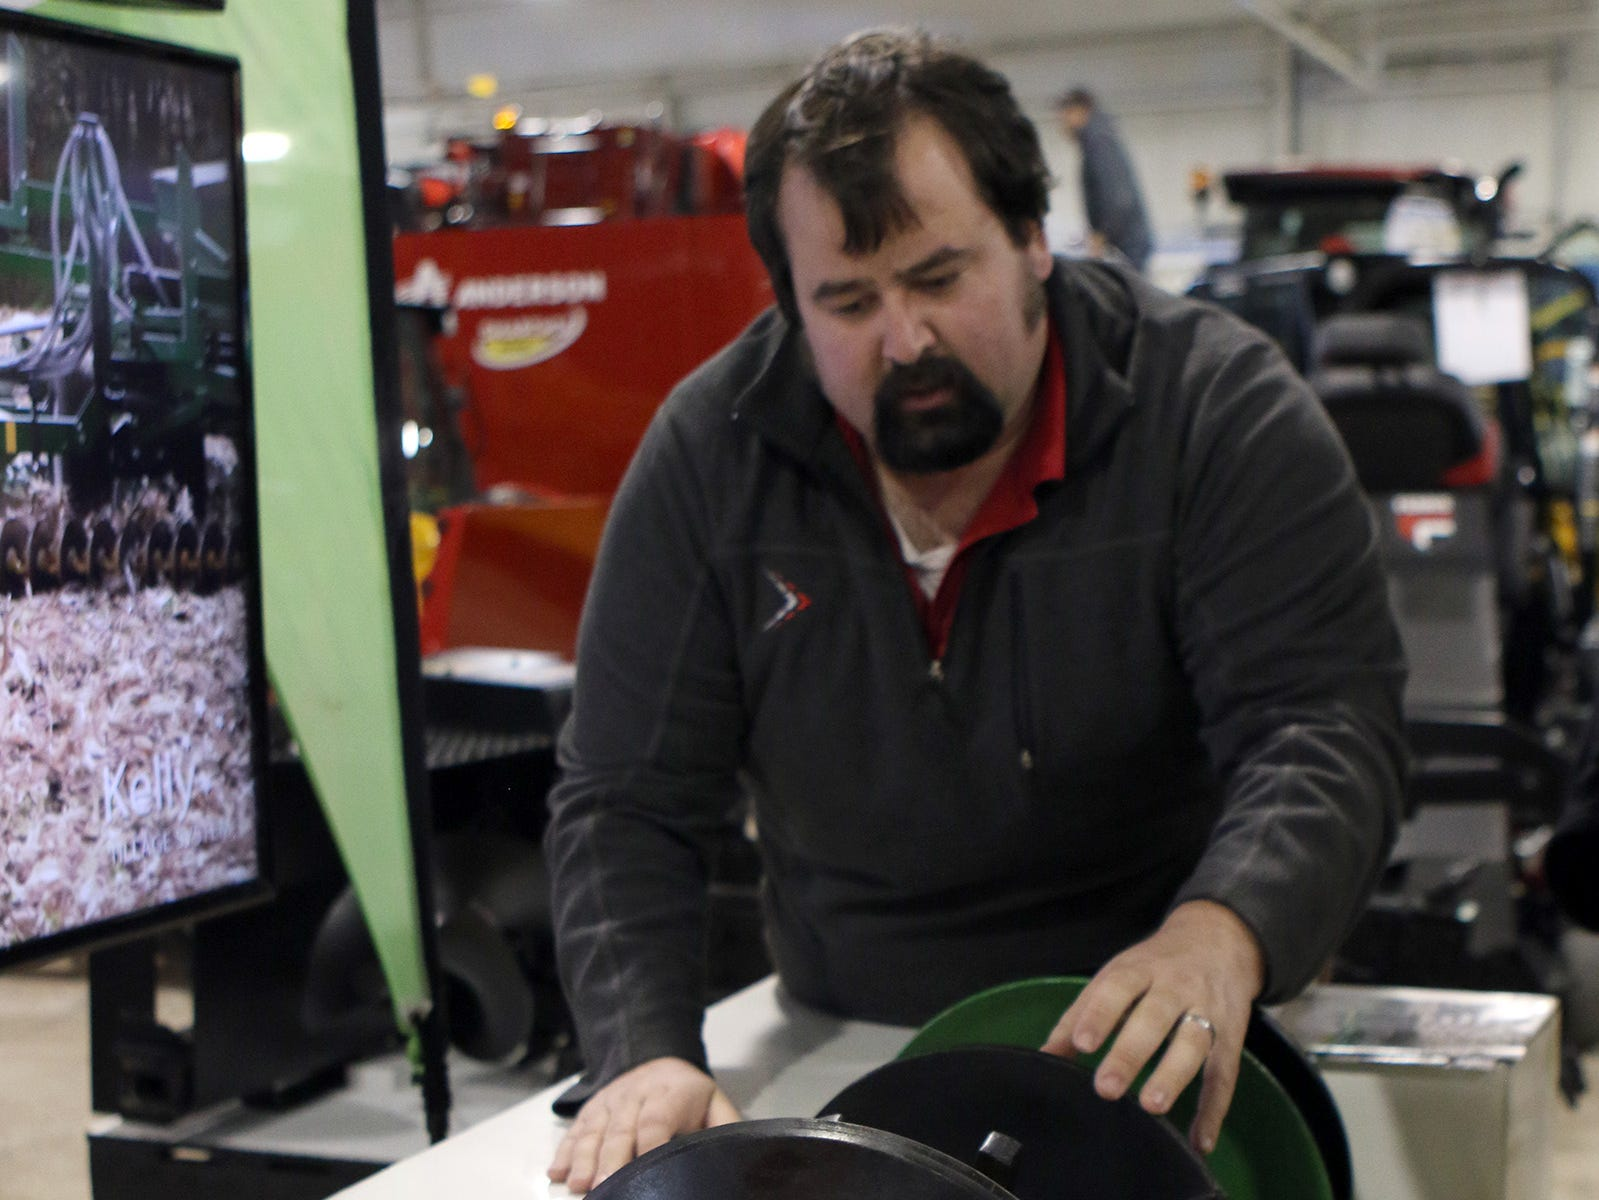 Aaron Bauer with Kelly Tillage System explains how the discs work on the tillage system during the Wisconsin Public Service Farm Show in Oshkosh on March 27.